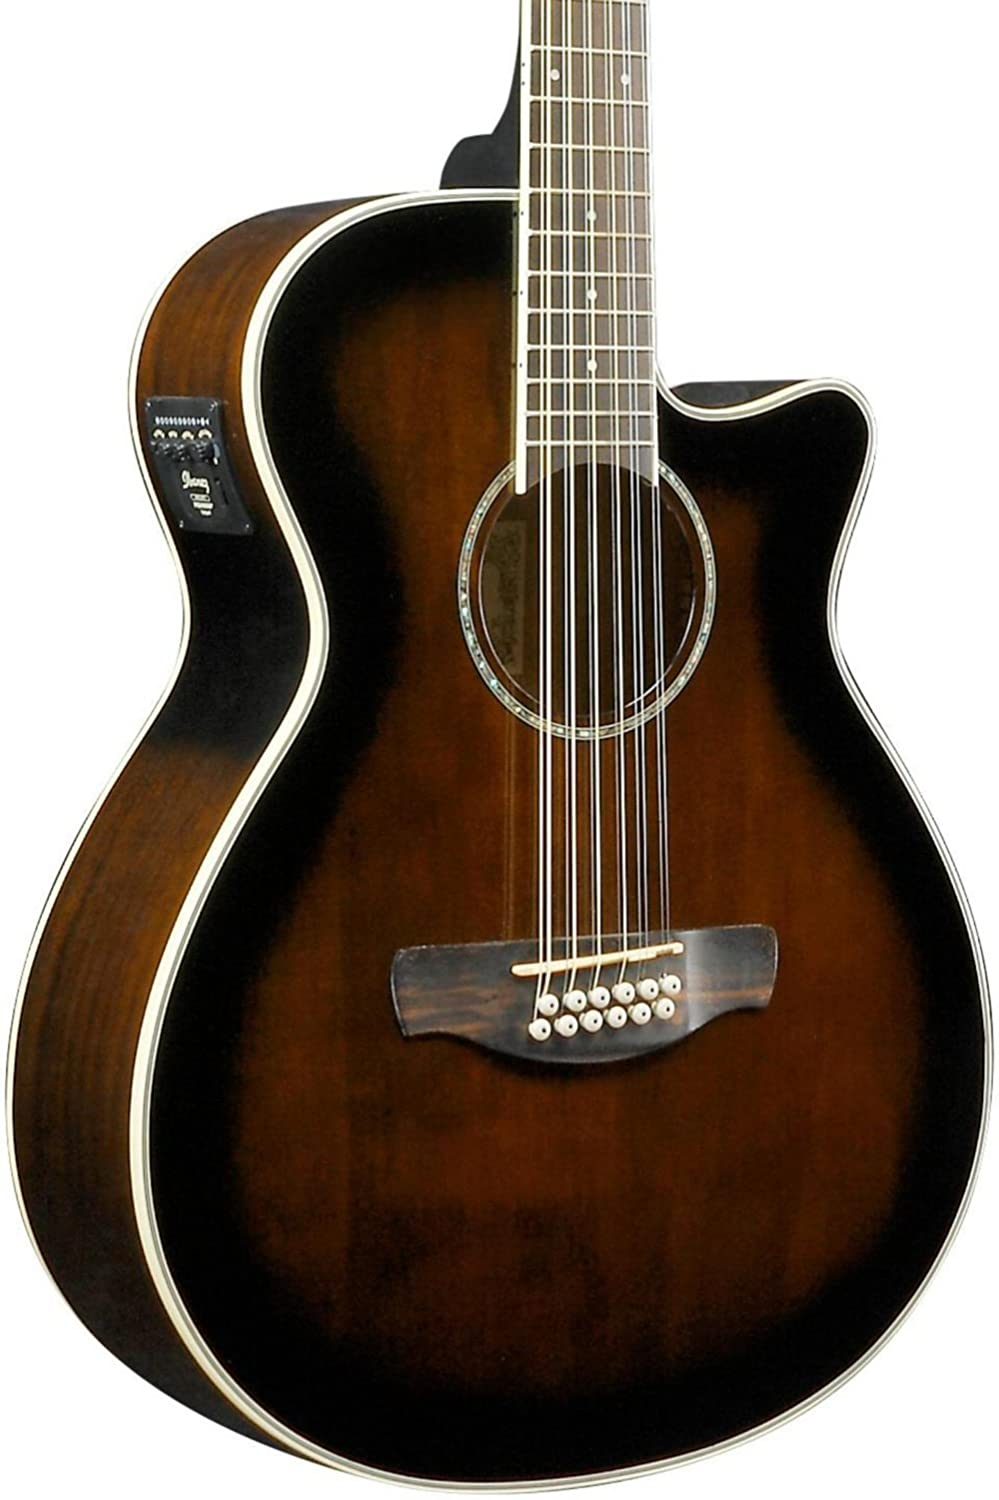 Ibanez AEG1812II AEG 12-String Acoustic-Electric Guitar Dark Violin Sunburst AEG1812IIDVS